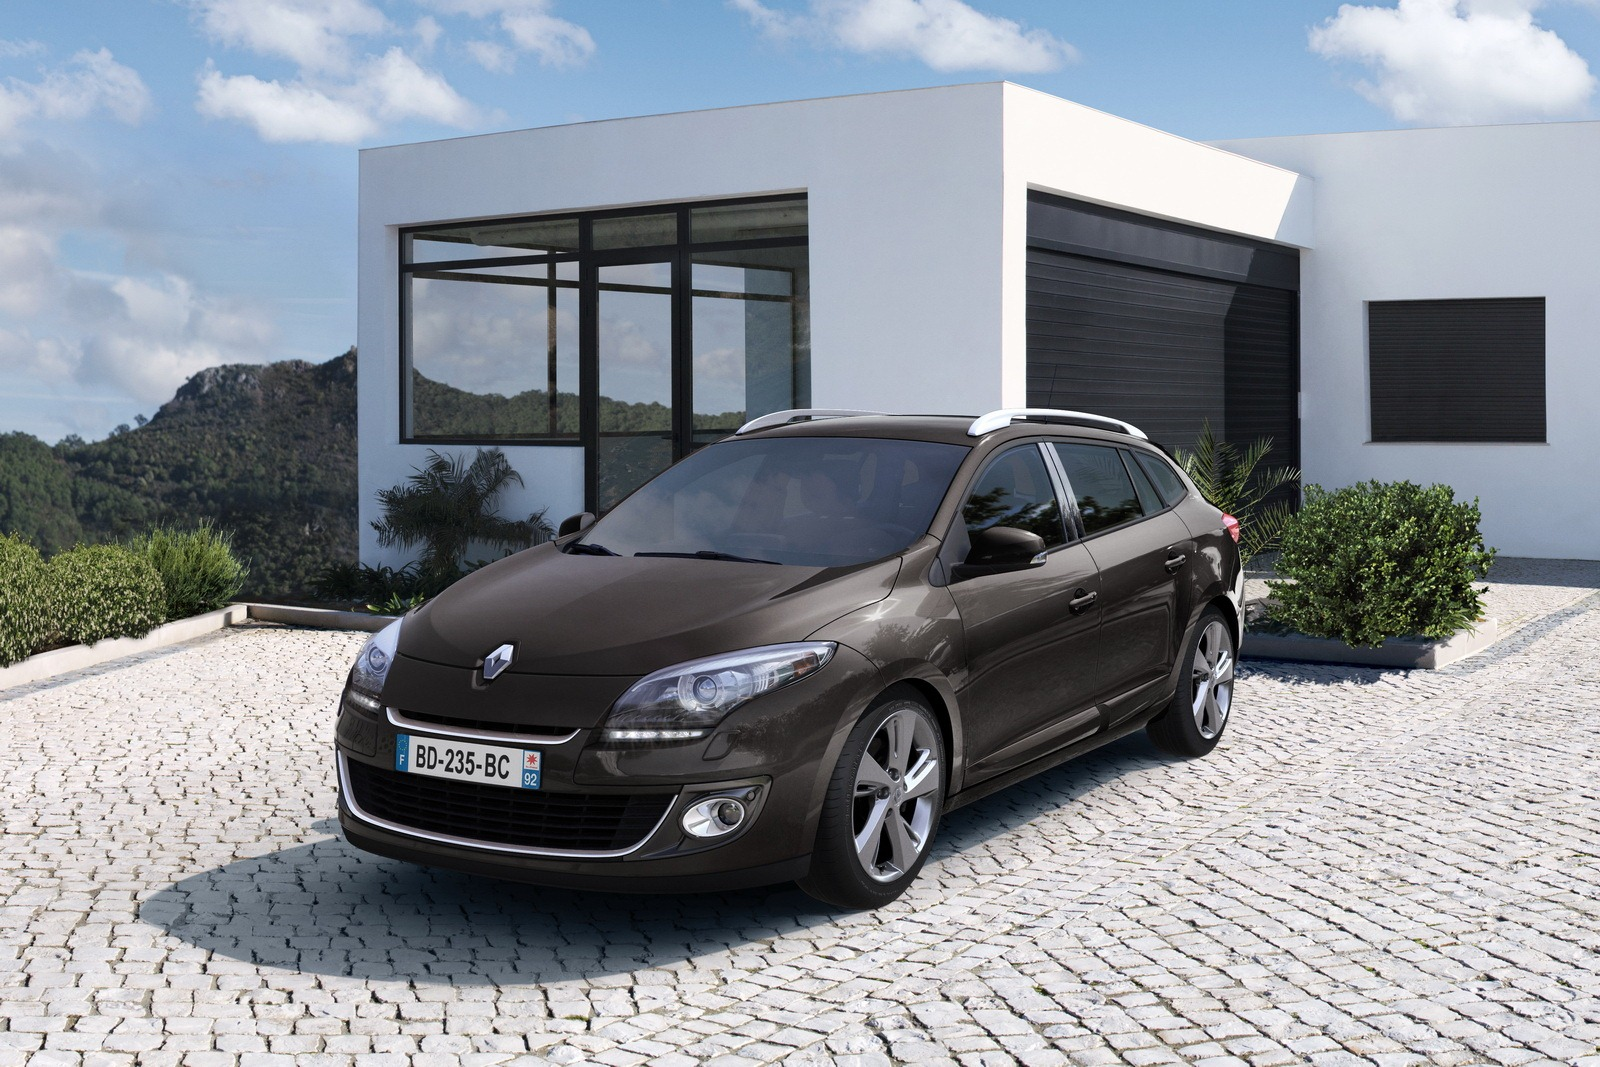 Pictures of renault megane iii estate 2012